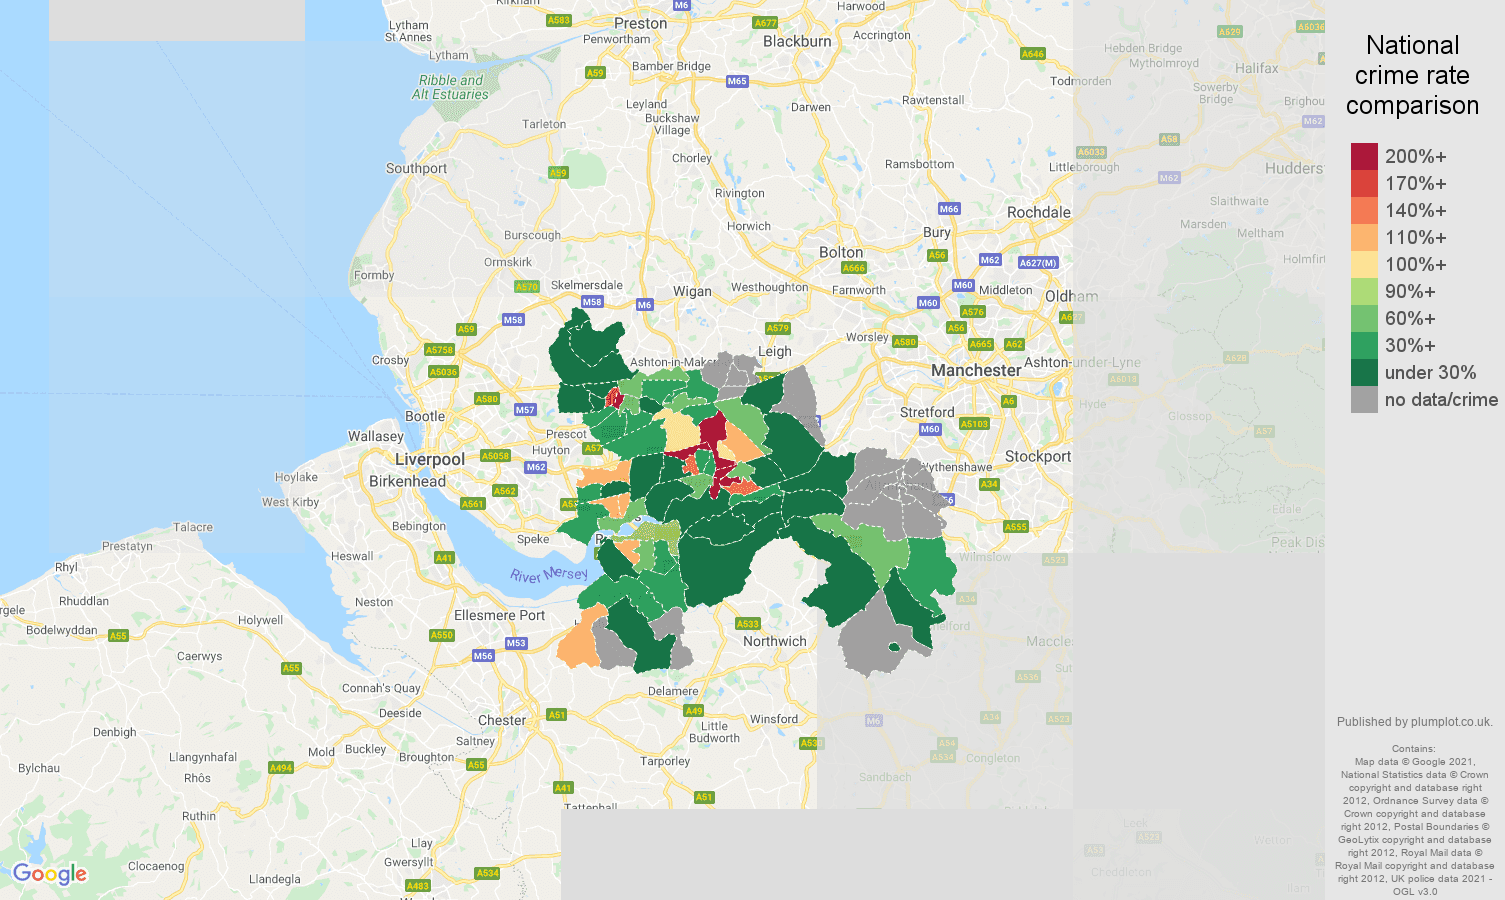 Warrington bicycle theft crime rate comparison map